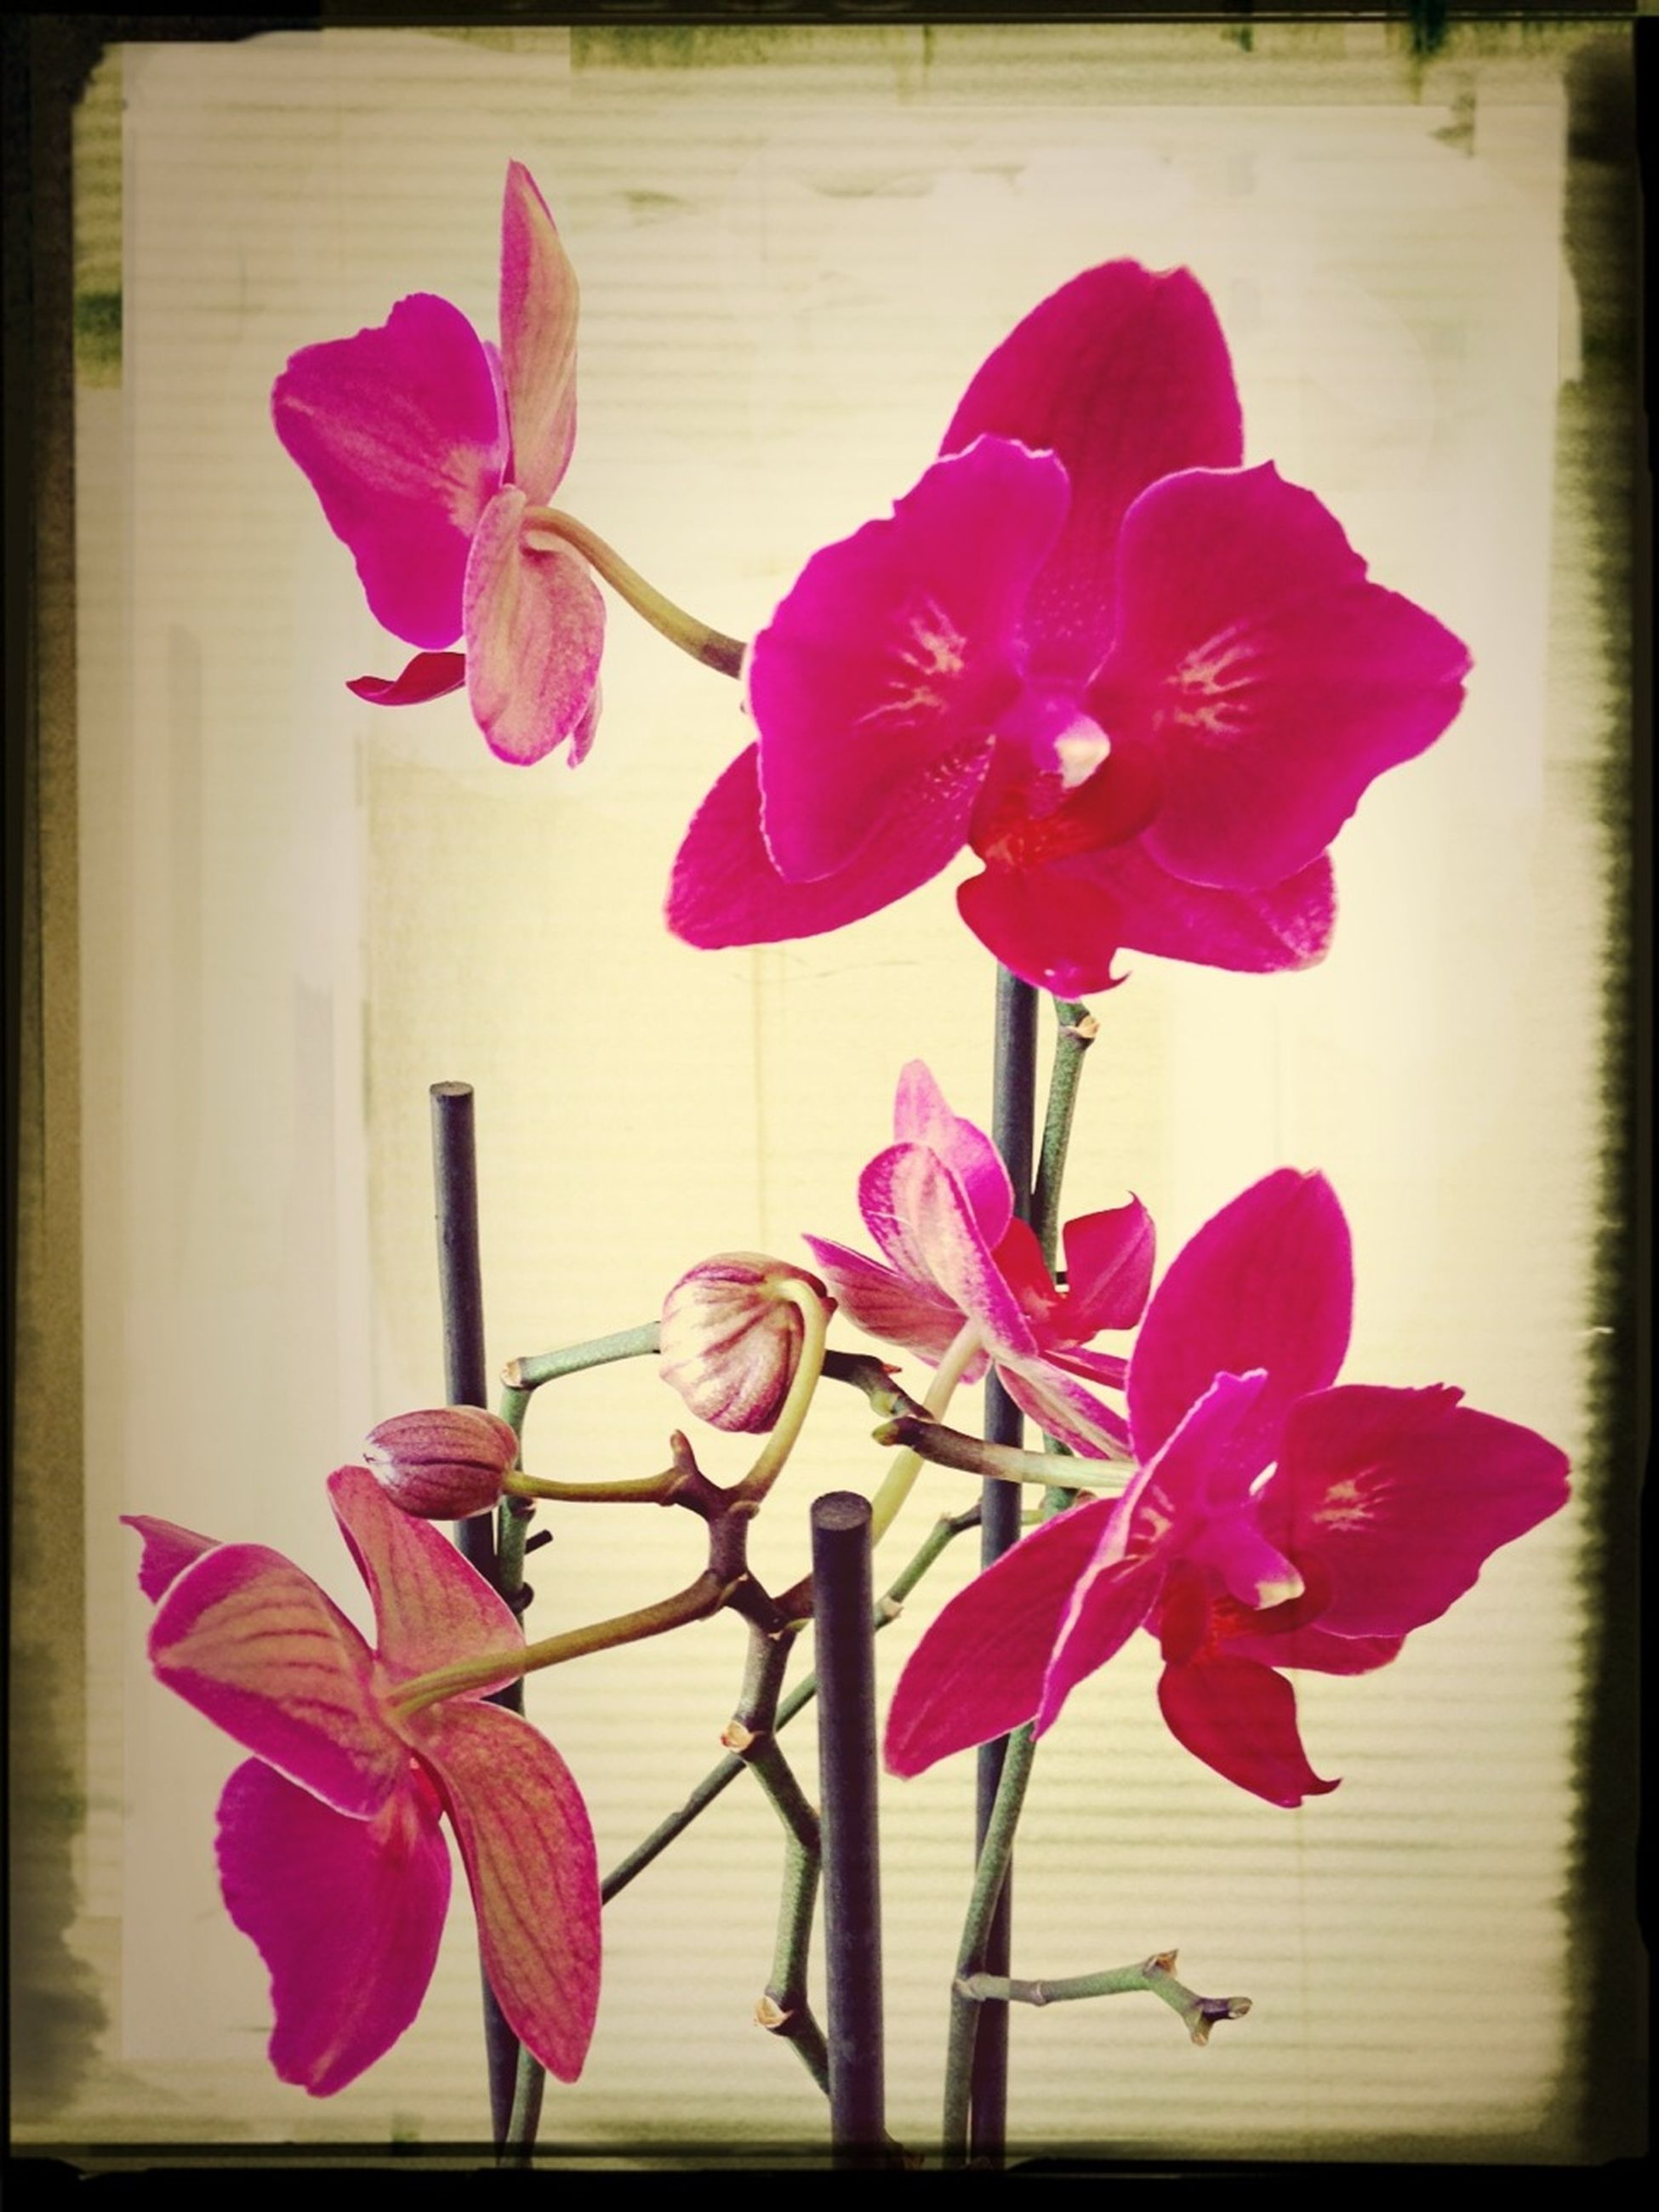 flower, petal, freshness, fragility, flower head, beauty in nature, pink color, growth, stem, nature, blooming, close-up, transfer print, plant, blossom, auto post production filter, indoors, in bloom, orchid, no people